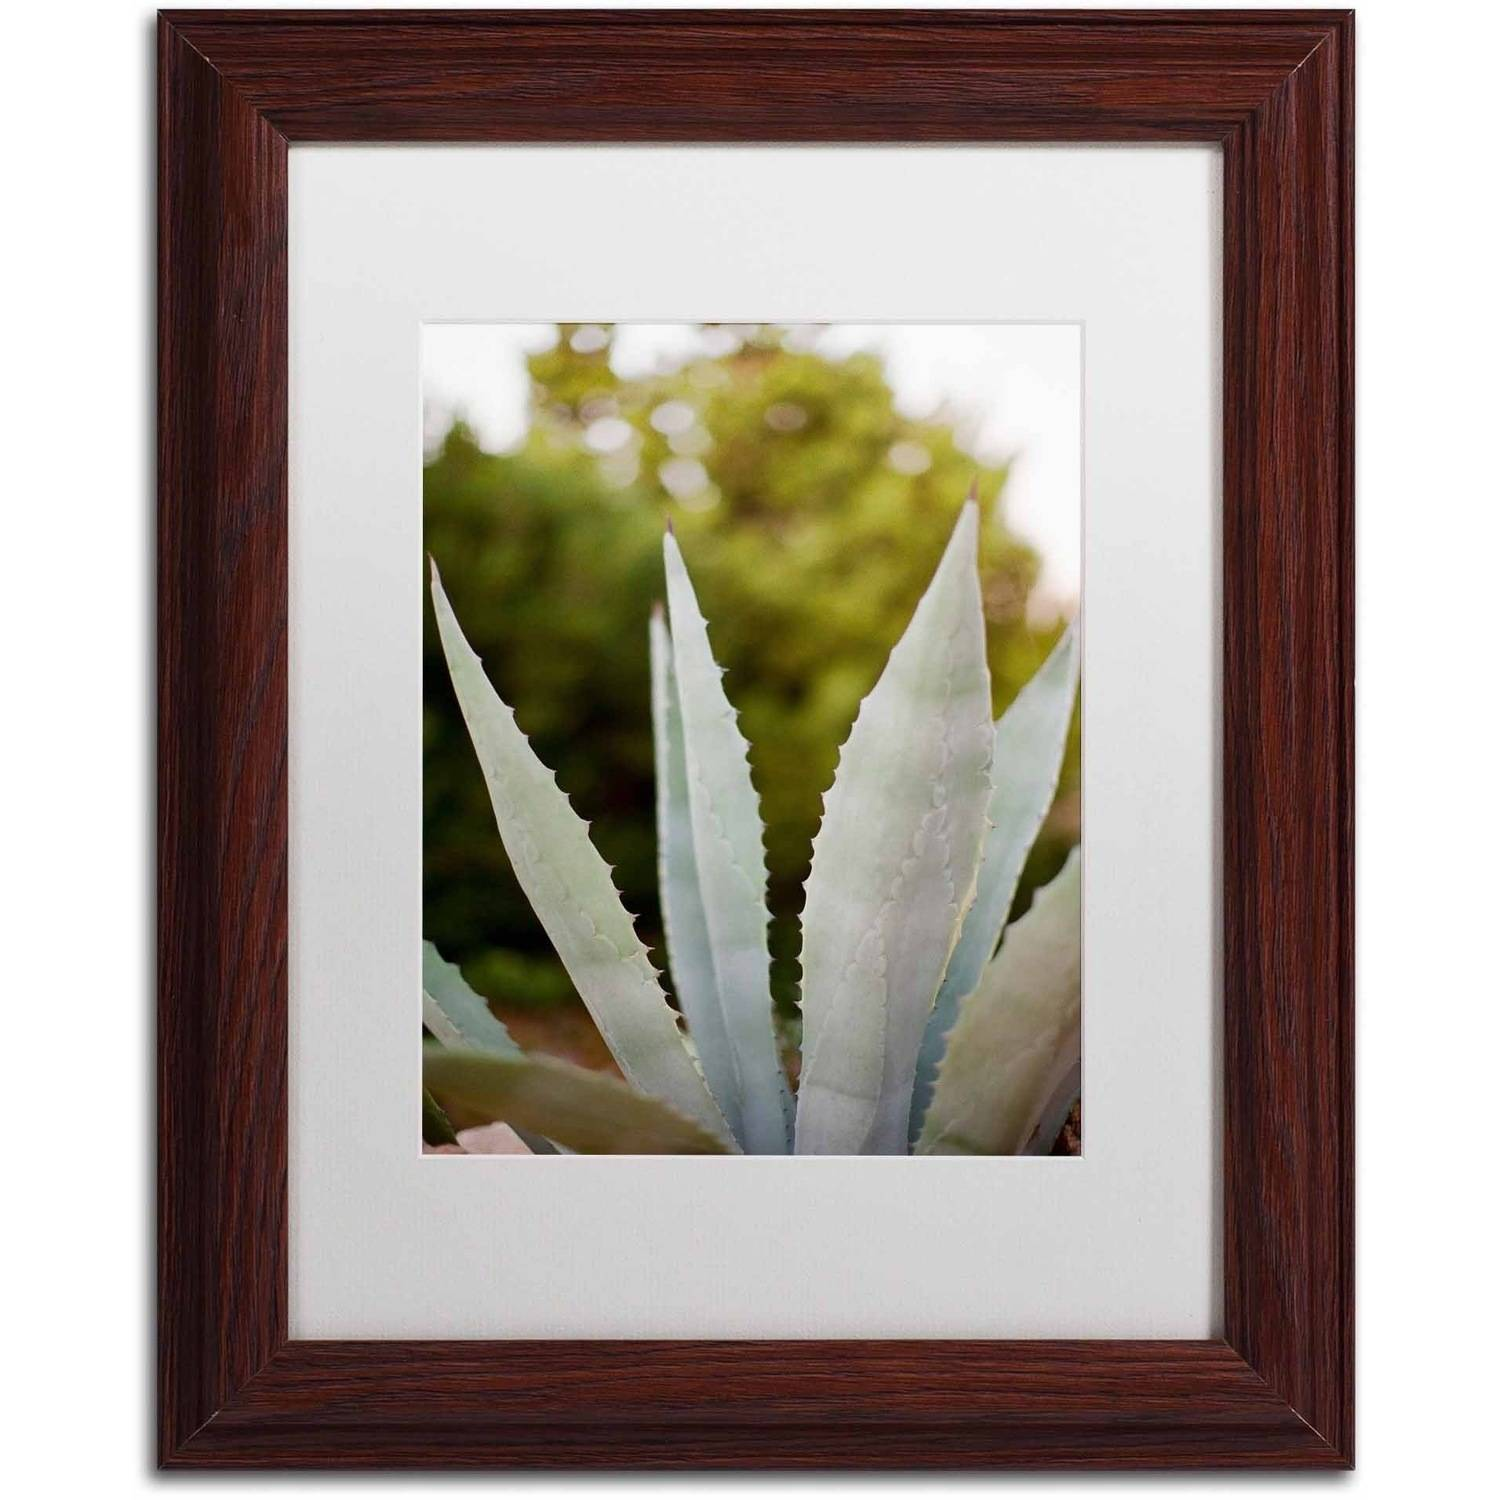 Trademark Fine Art 'Succulents' Canvas Art by Ariane Moshayedi, White Matte, Wood Frame